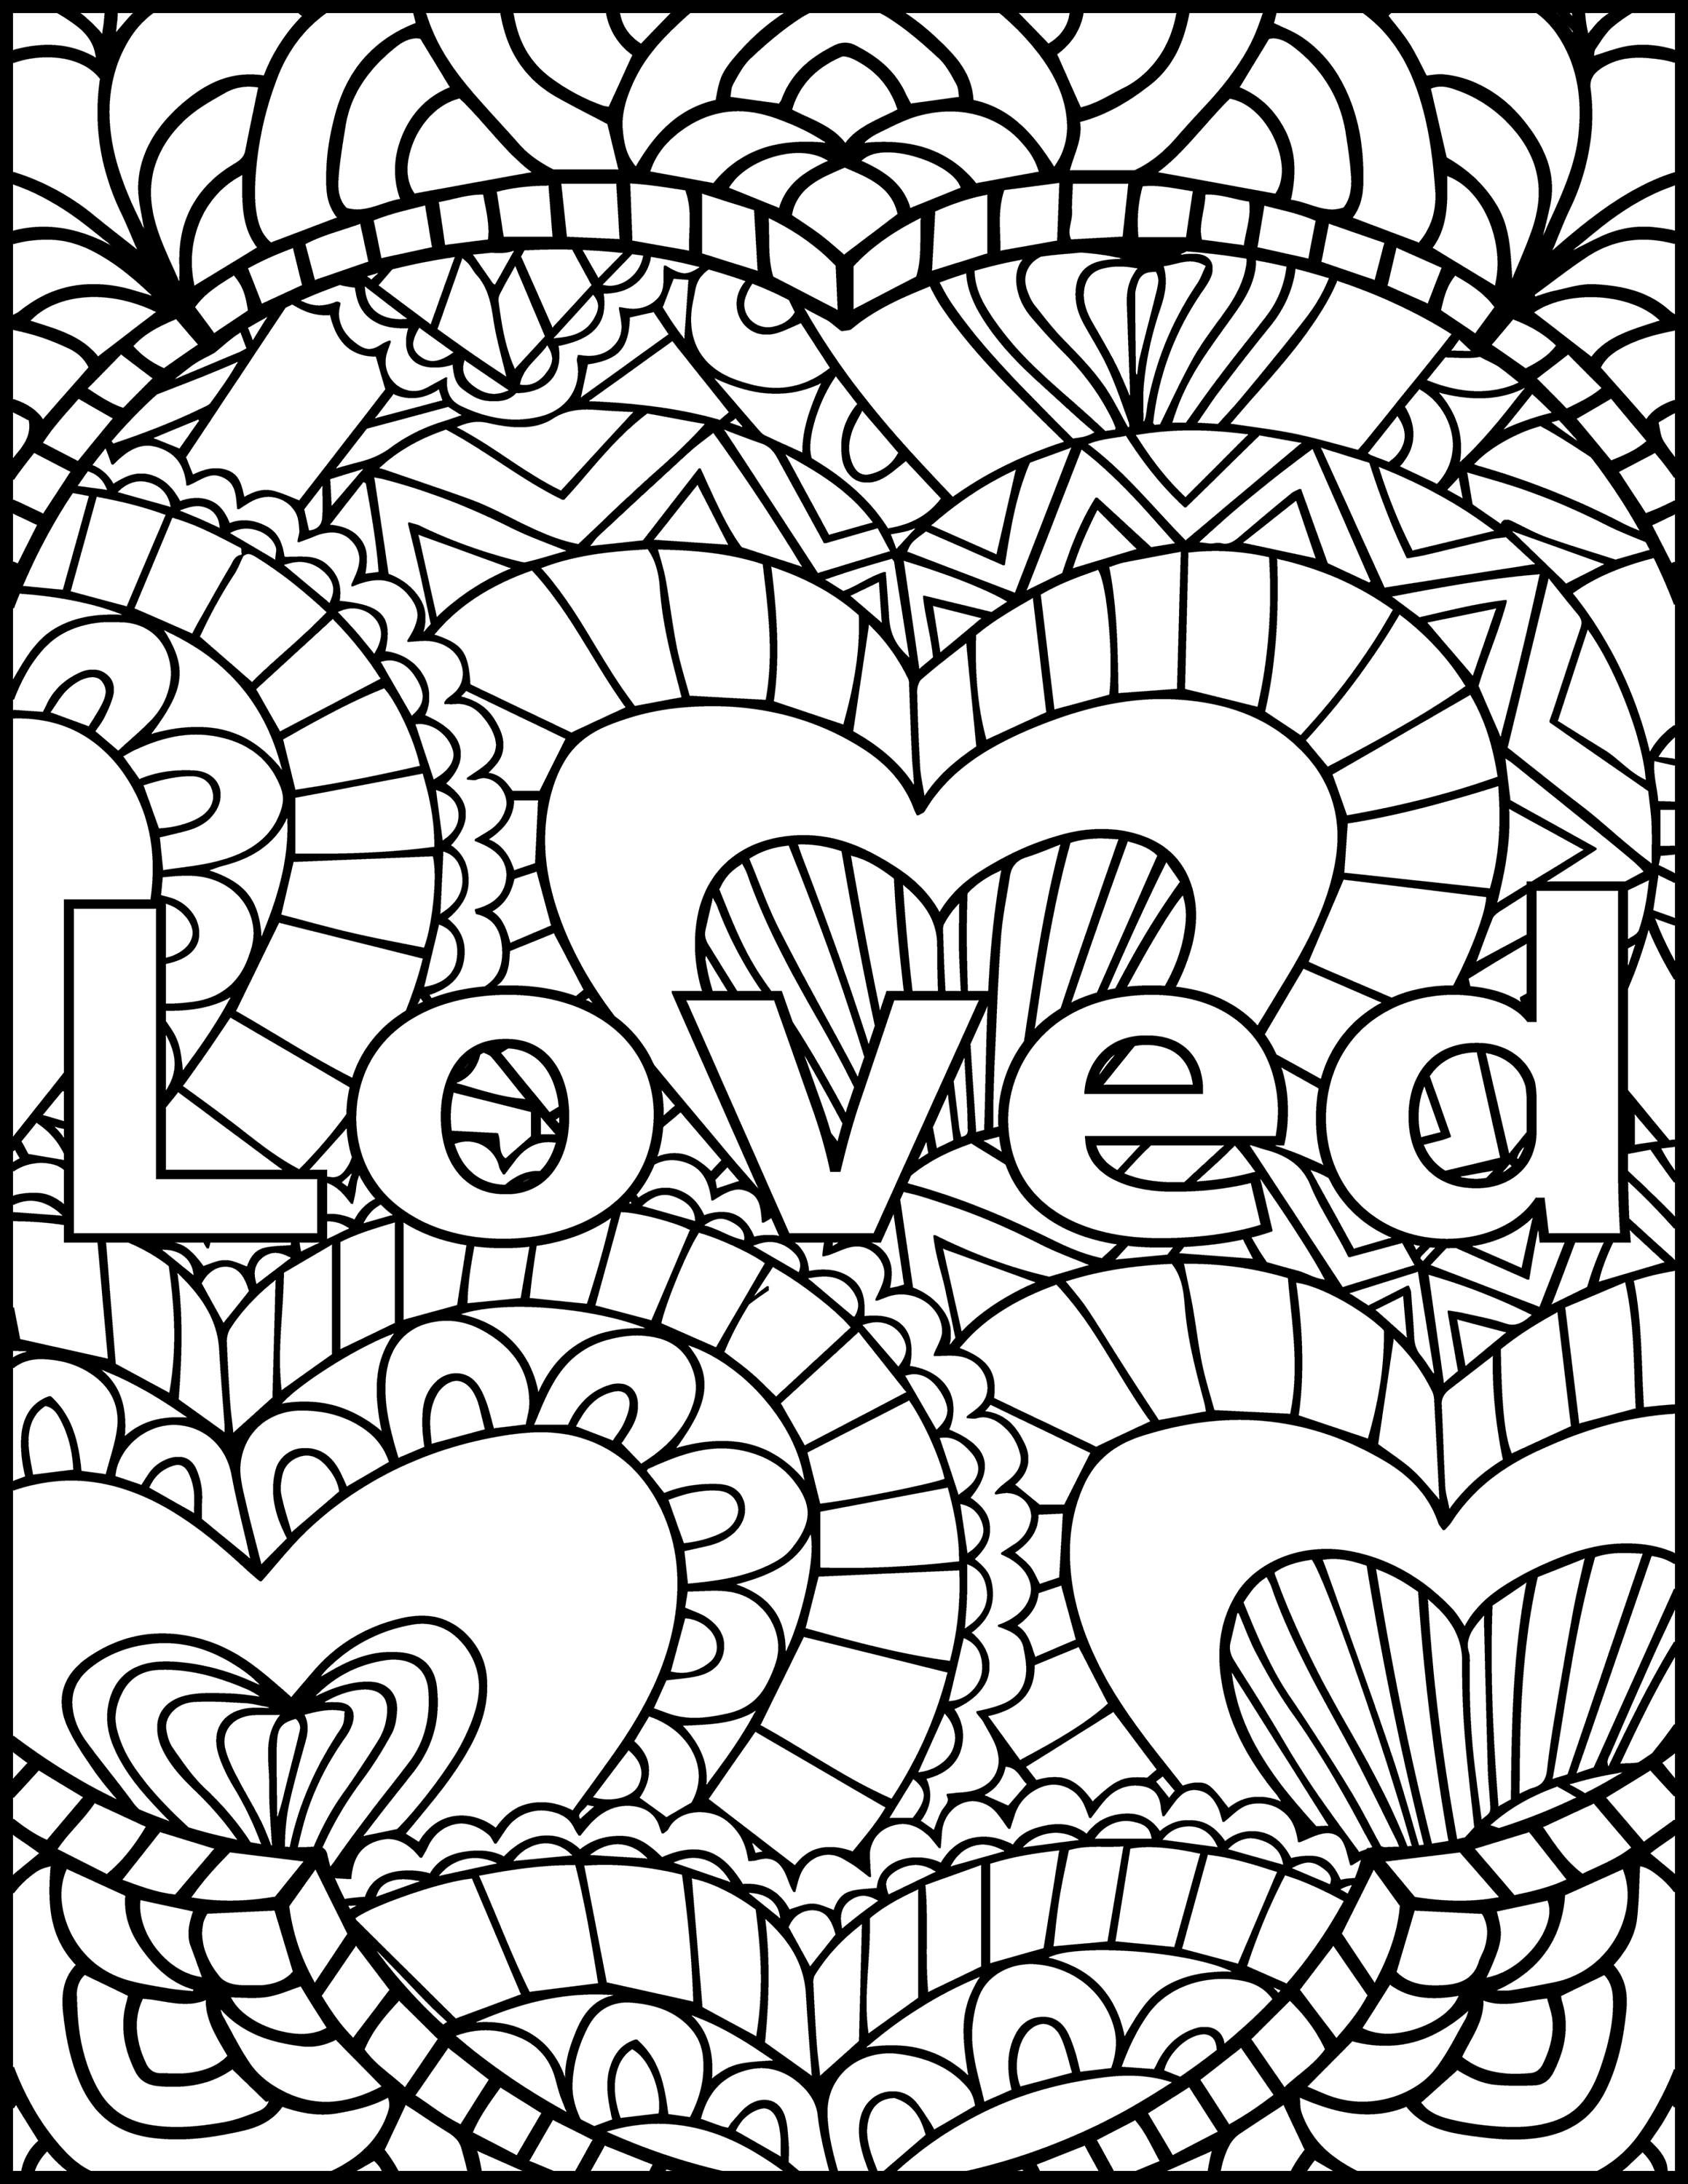 adult coloring page sprinkles dirty dishes helping to become aware of when coloring adult page